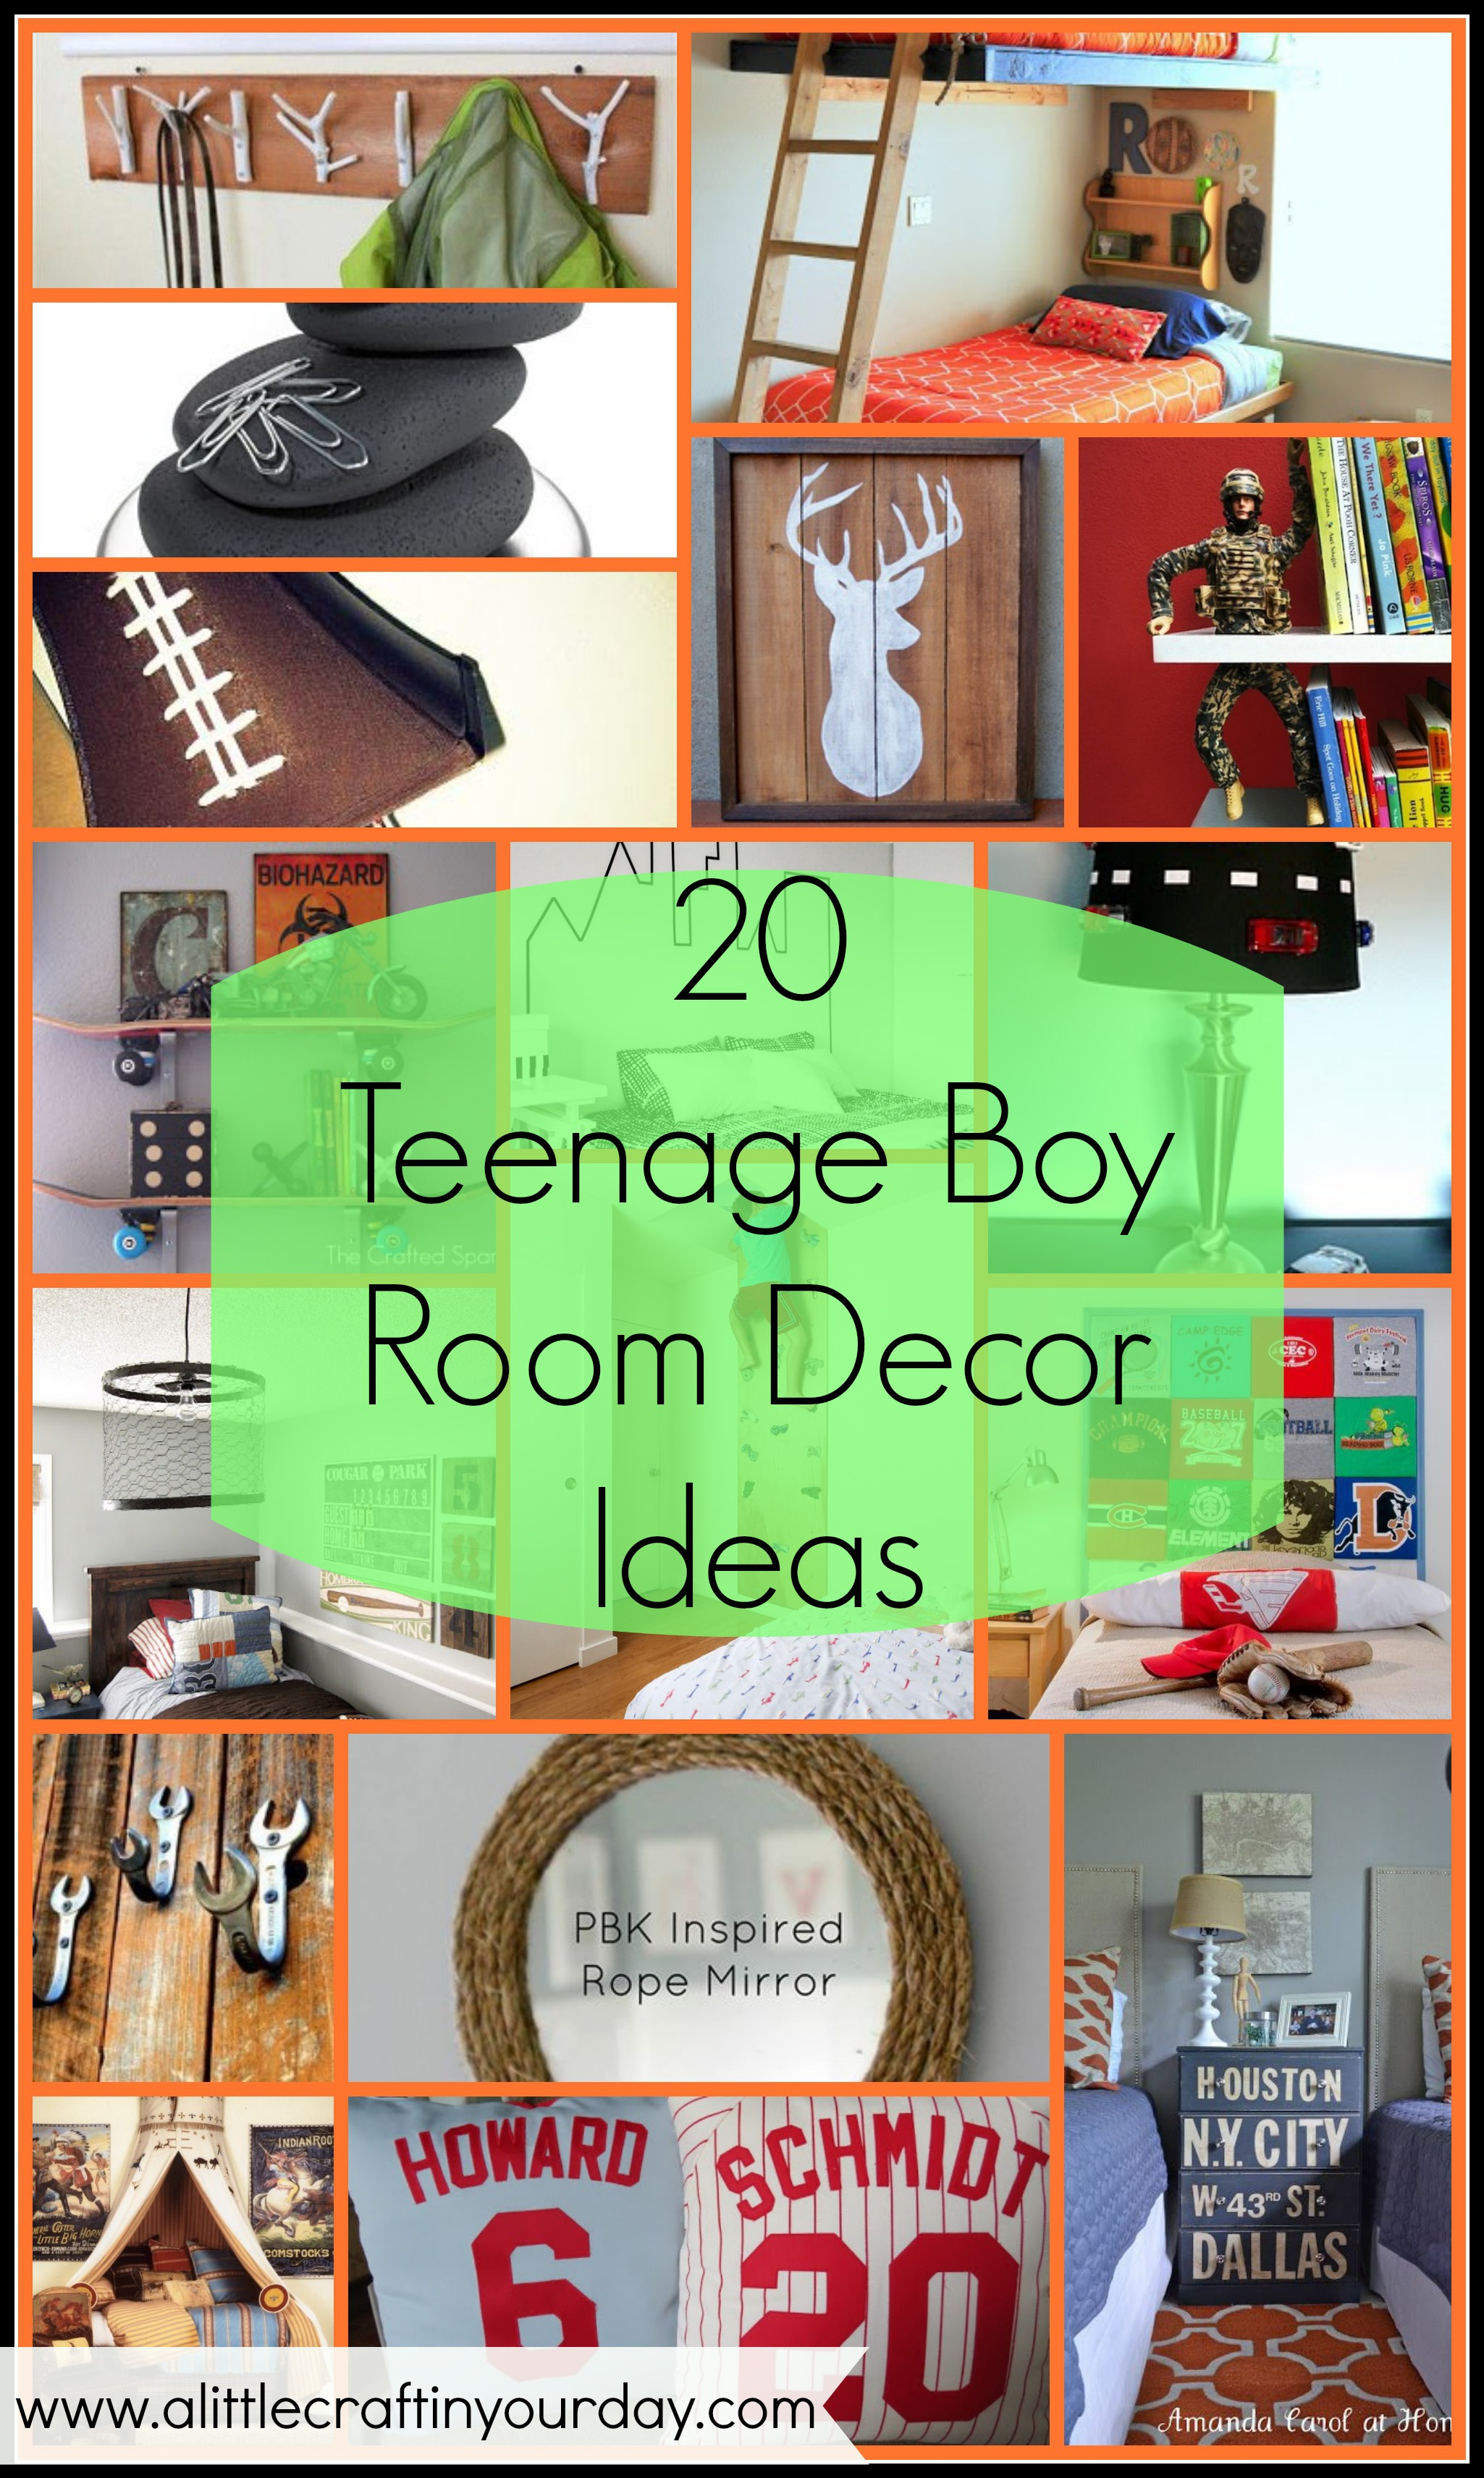 831 20 teenage boy room decor ideas 20_teenage_boy_room_decor_ideas simple bedroom for teenage boys d22 teenage